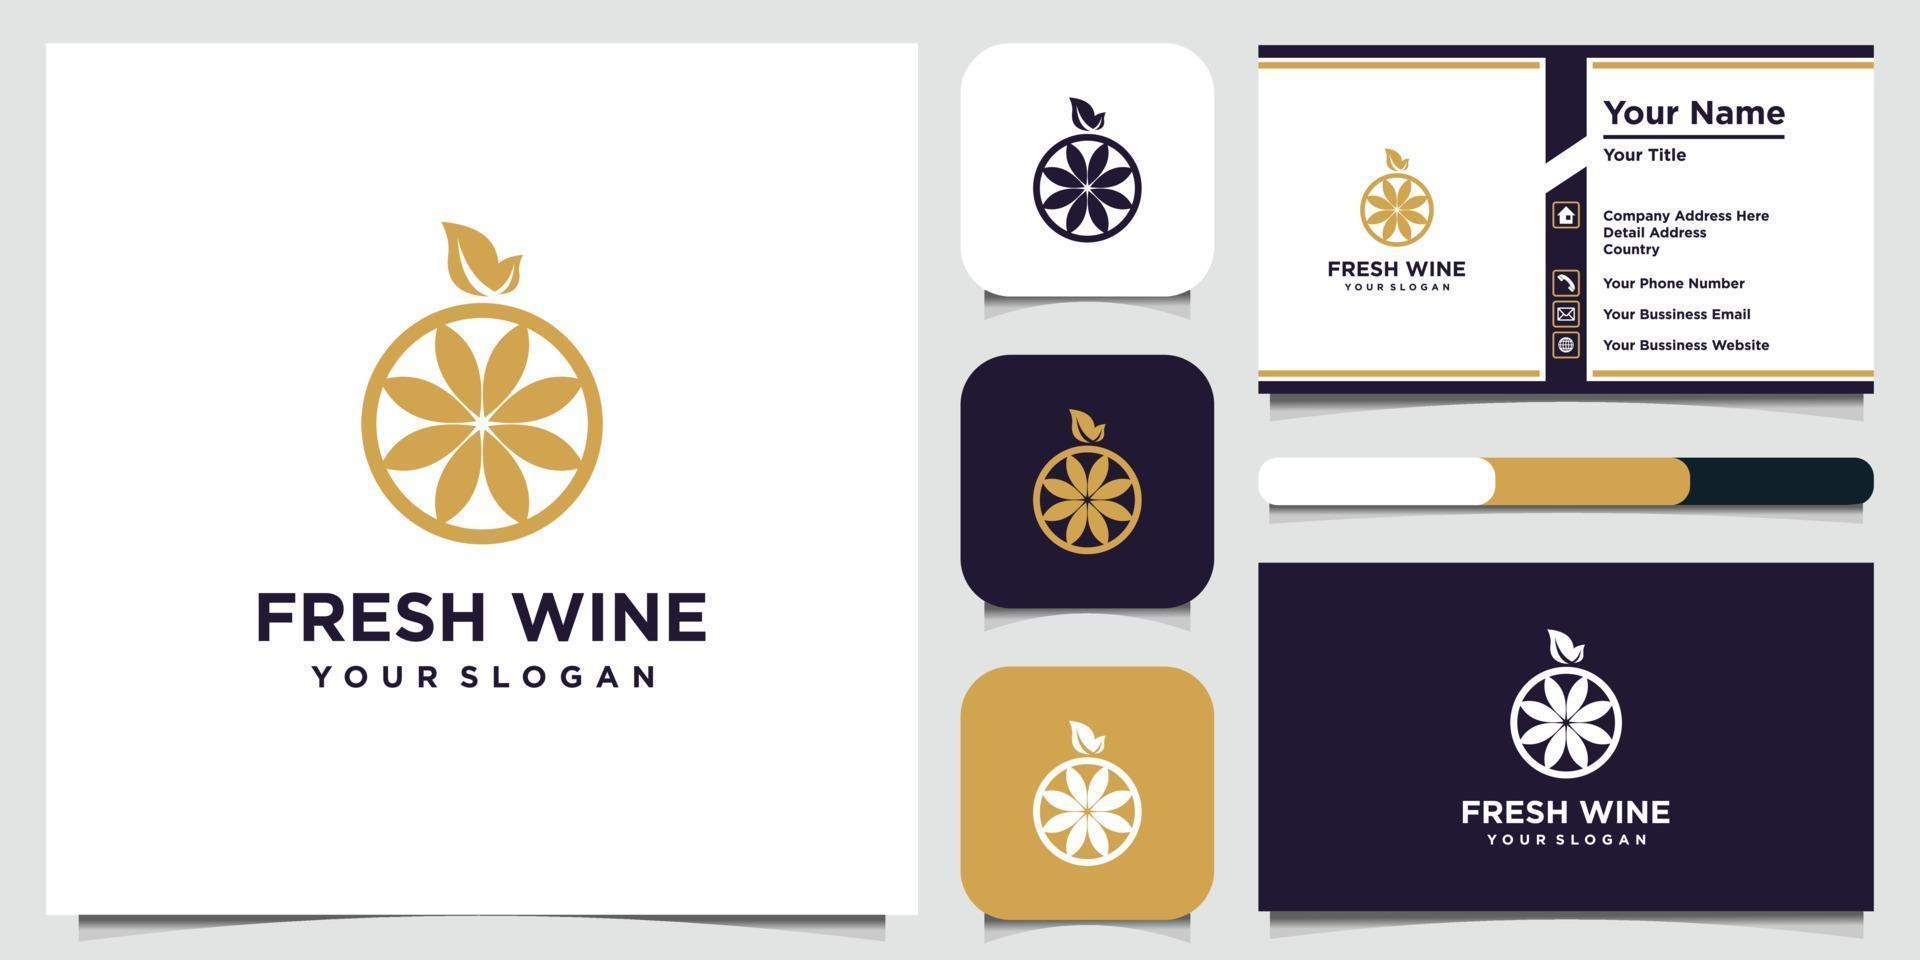 High quality flat style icon illustration of grapes and business card vector